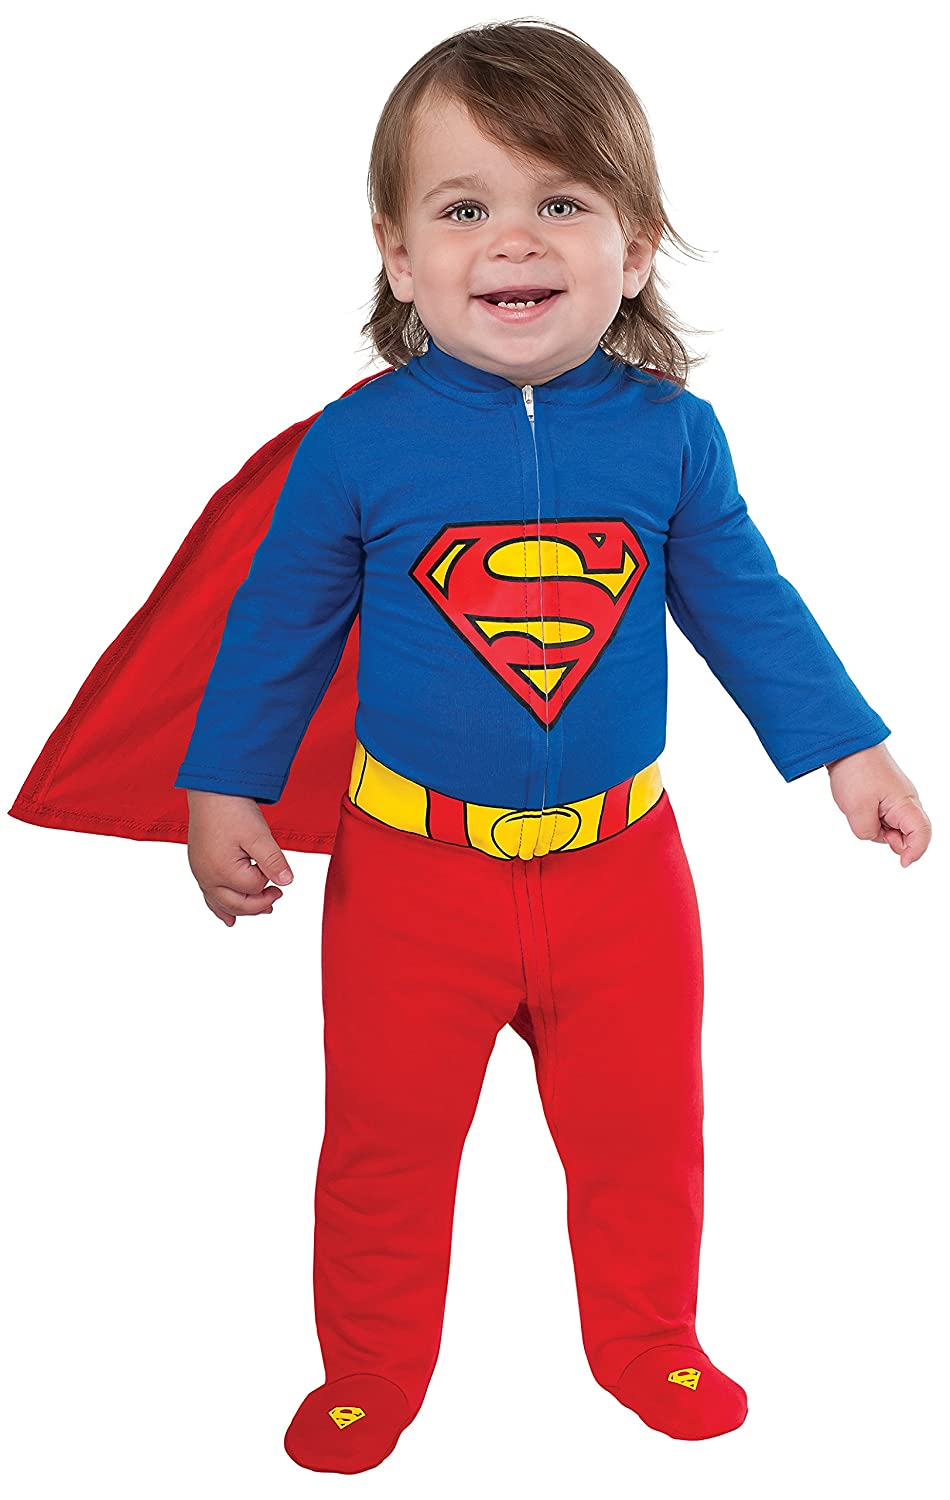 Rubie's Kostüm Superman DC Comics Krypton-Baby